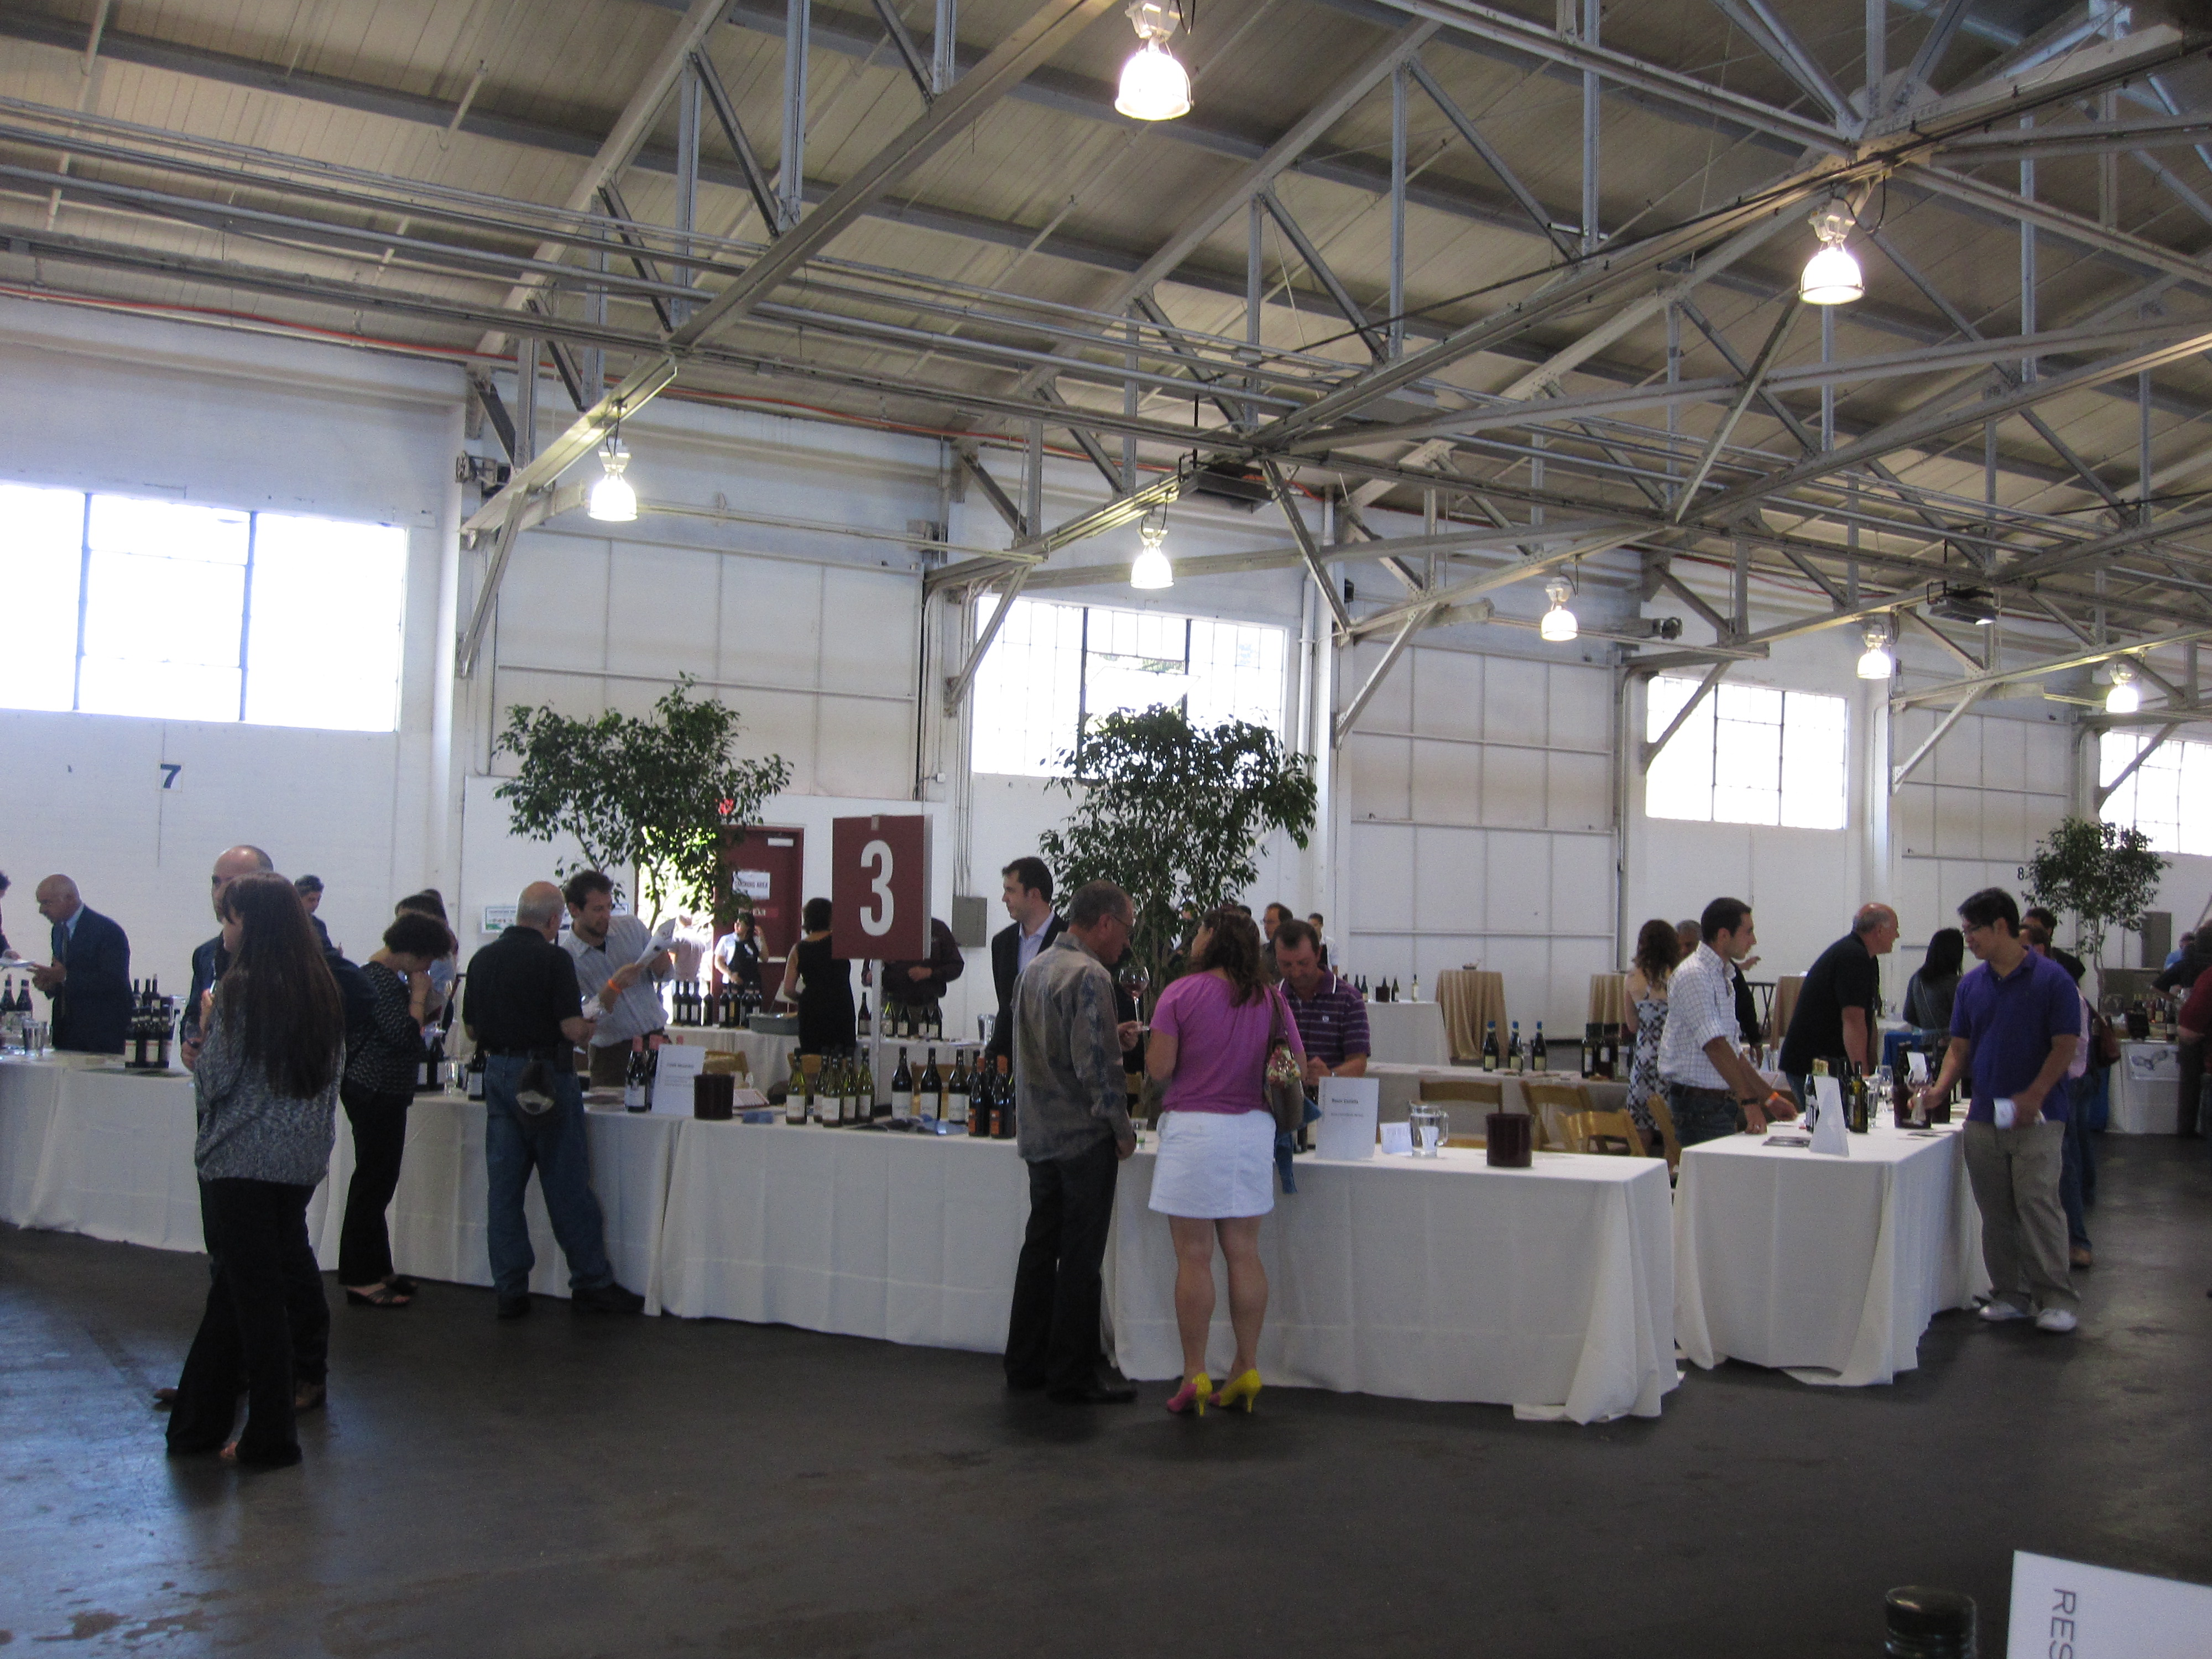 Unlike other wine tastings at Fort Mason, this one was not overcrowded.